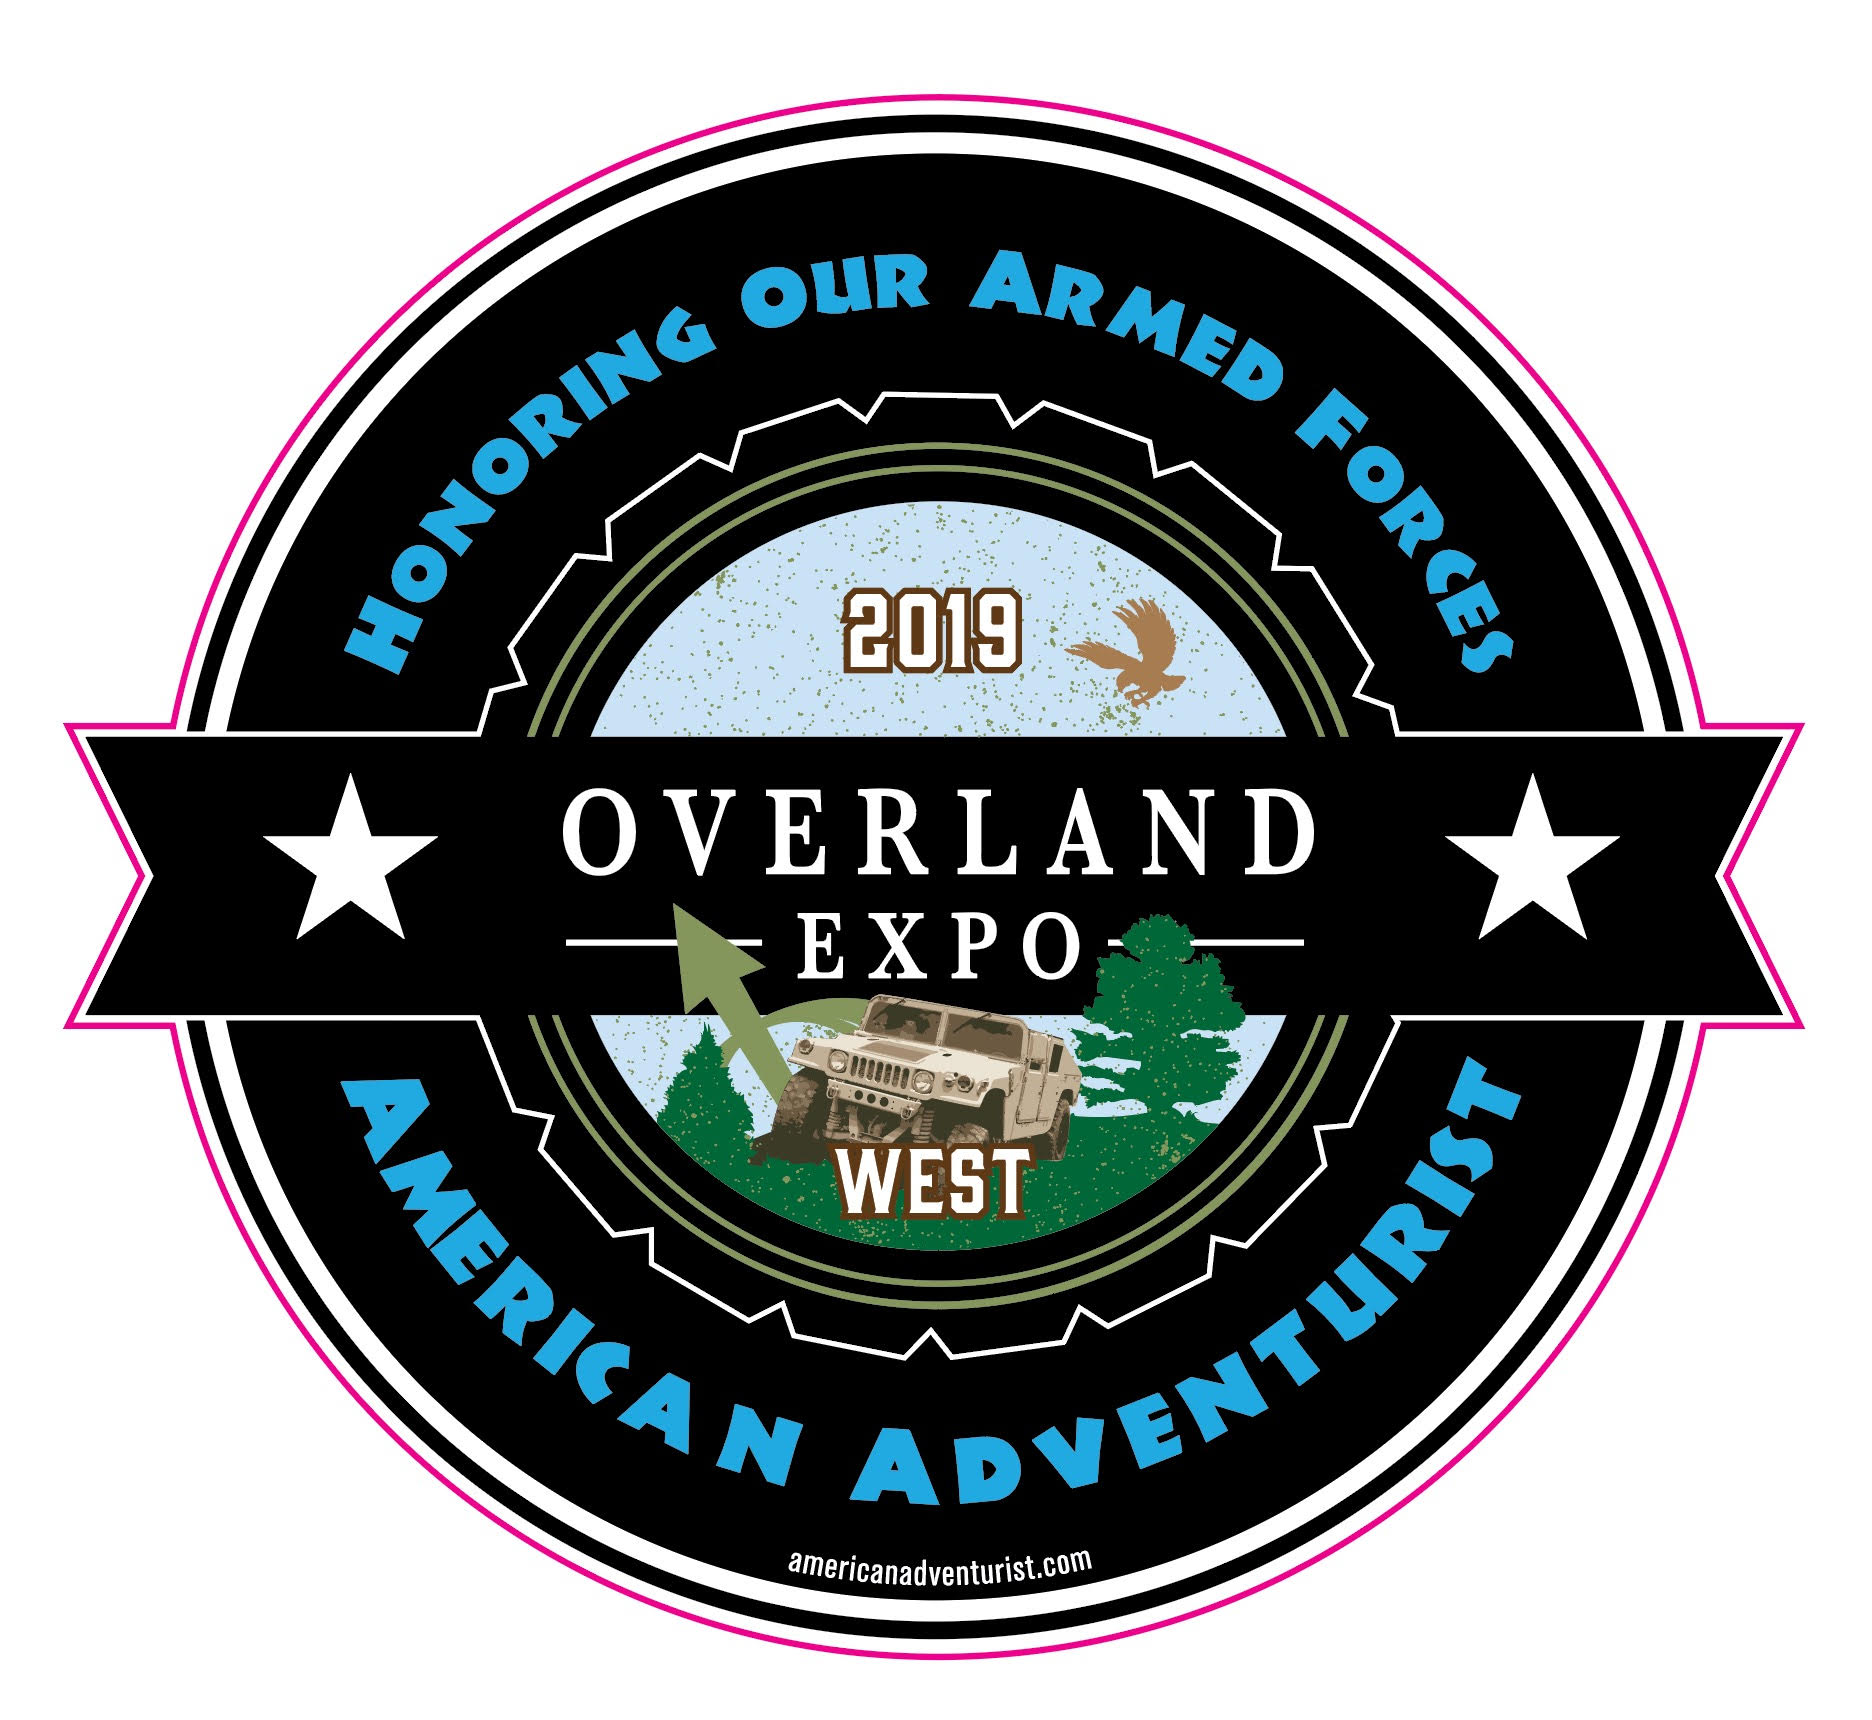 Active duty military and veterans can pick up this limited edition sticker from the American Adventurist display while supplies last.